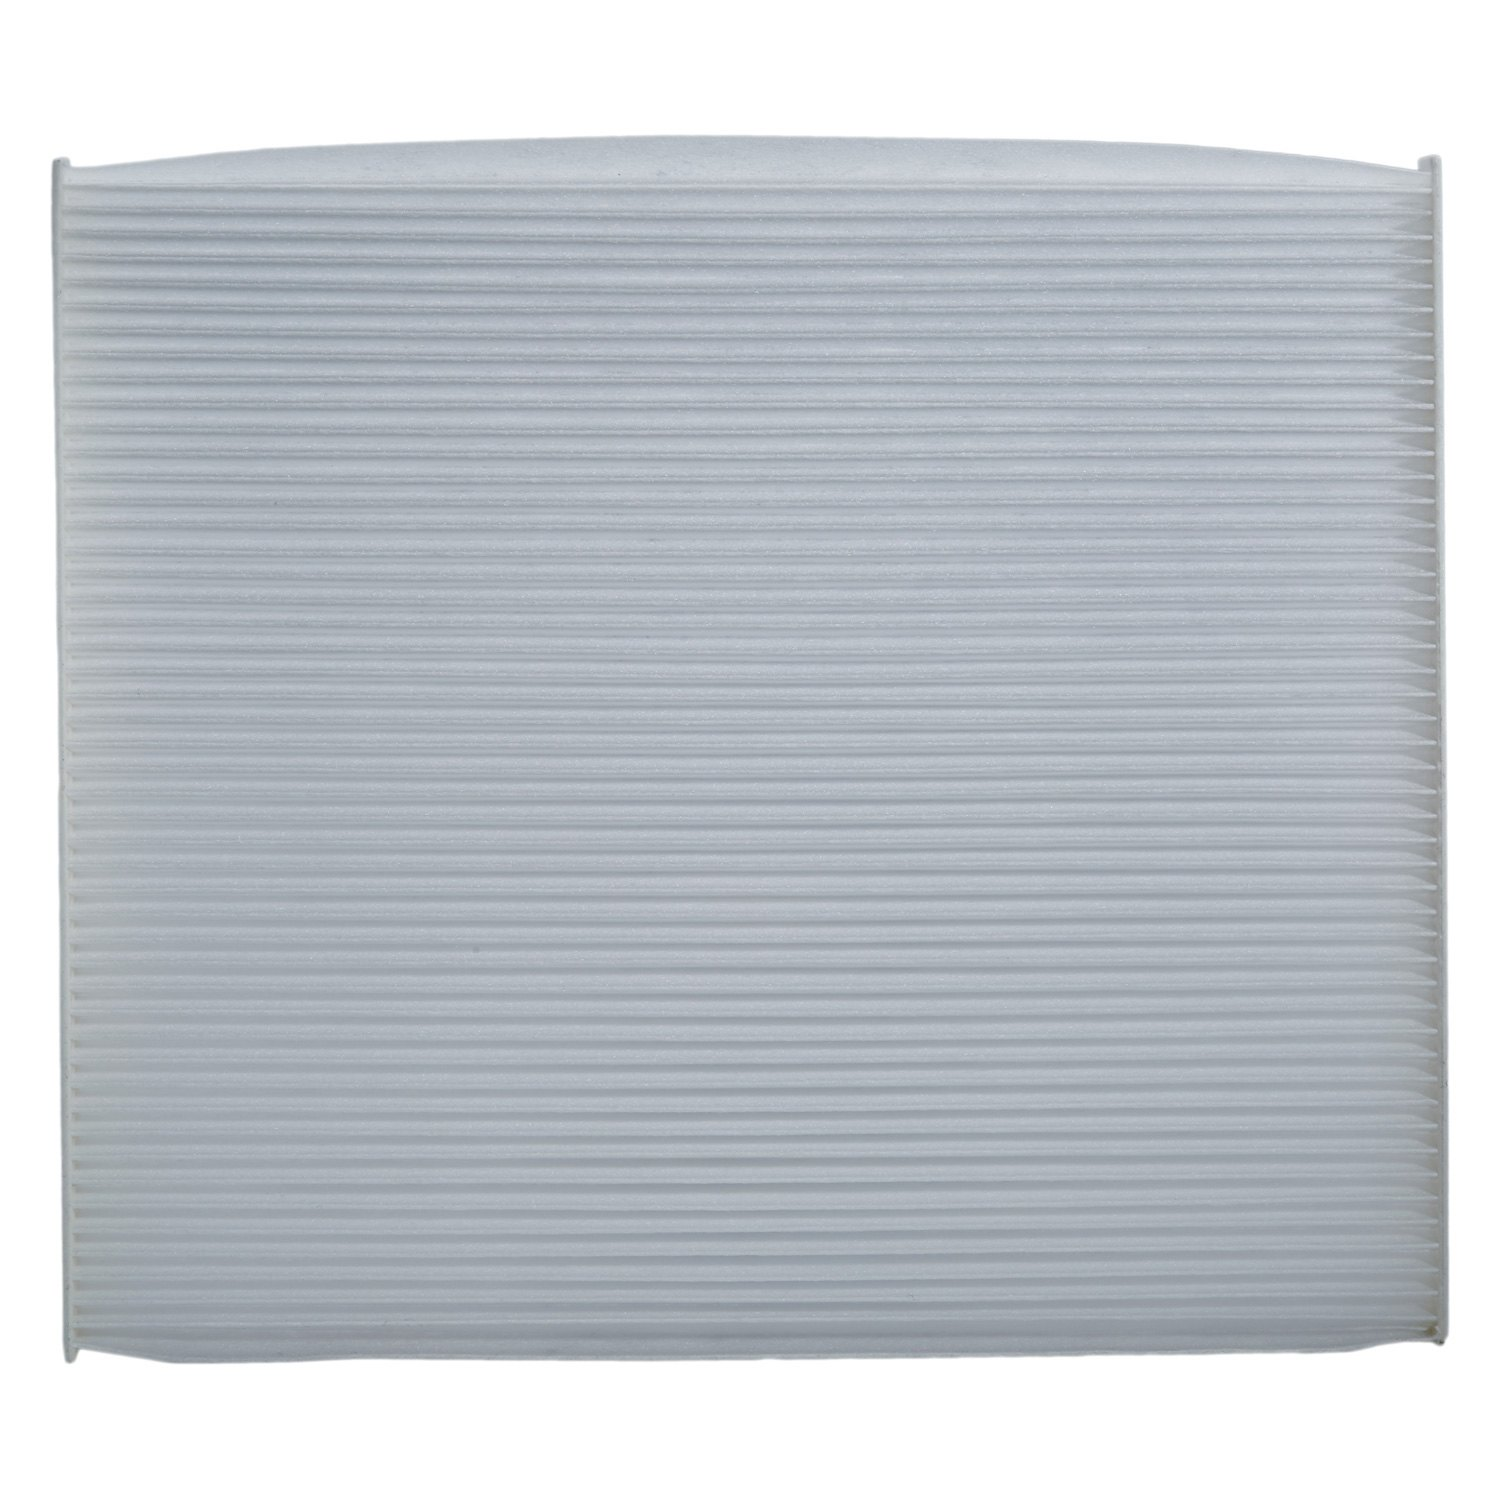 Tyc nissan maxima 2016 cabin air filter for 2016 nissan murano cabin air filter